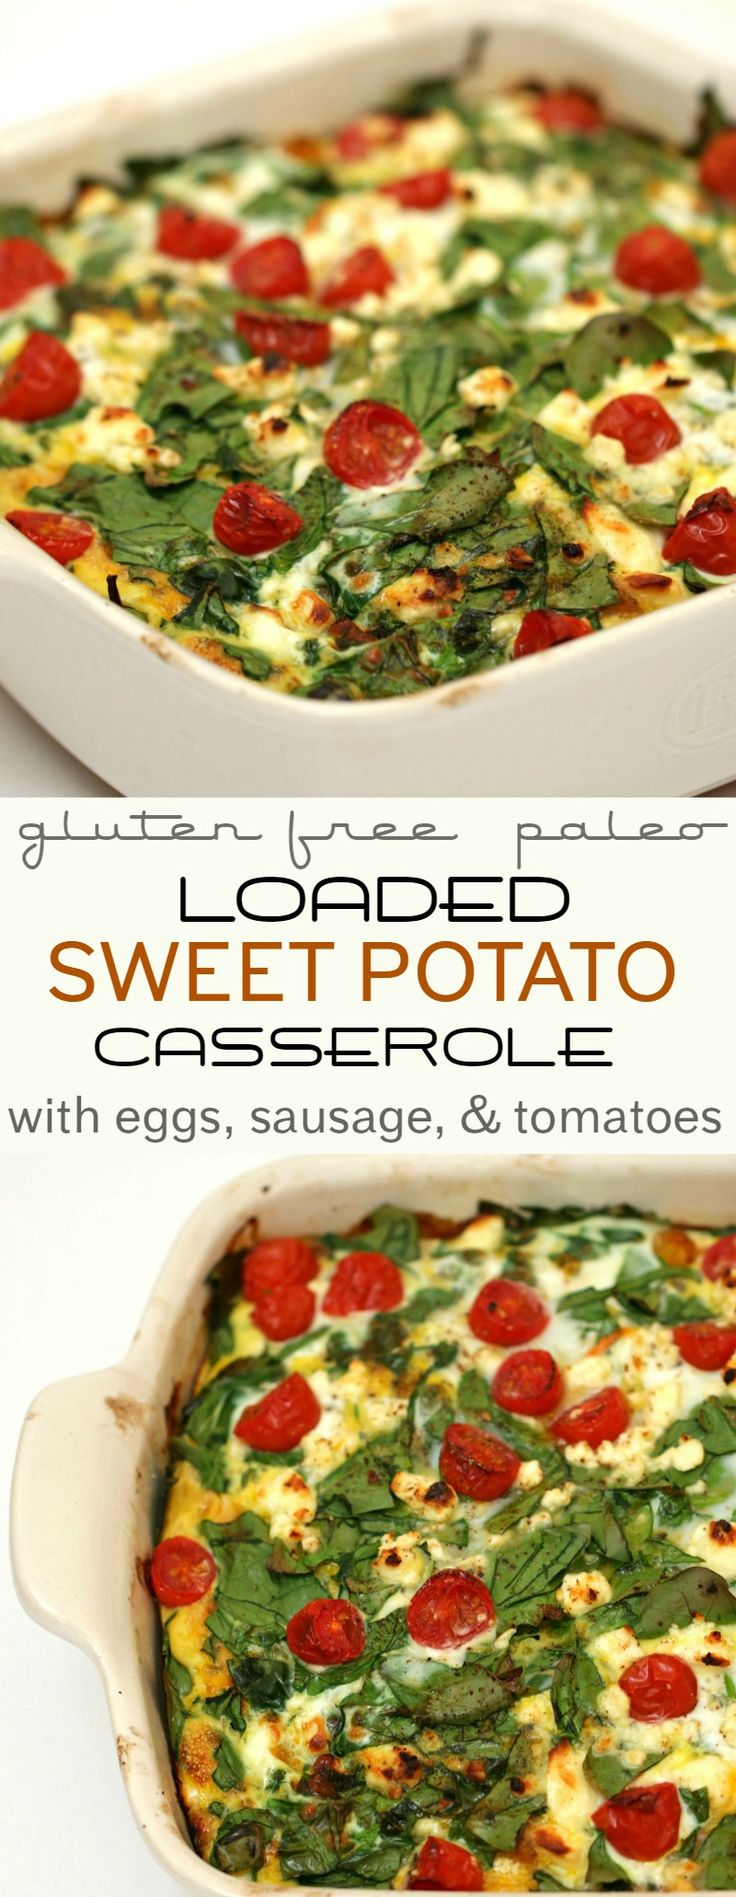 This loaded sweet potato casserole is a perfect way to make a healthy casserole that can be eaten for breakfast, lunch or dinner! Click through for a video tutorial and the recipe.